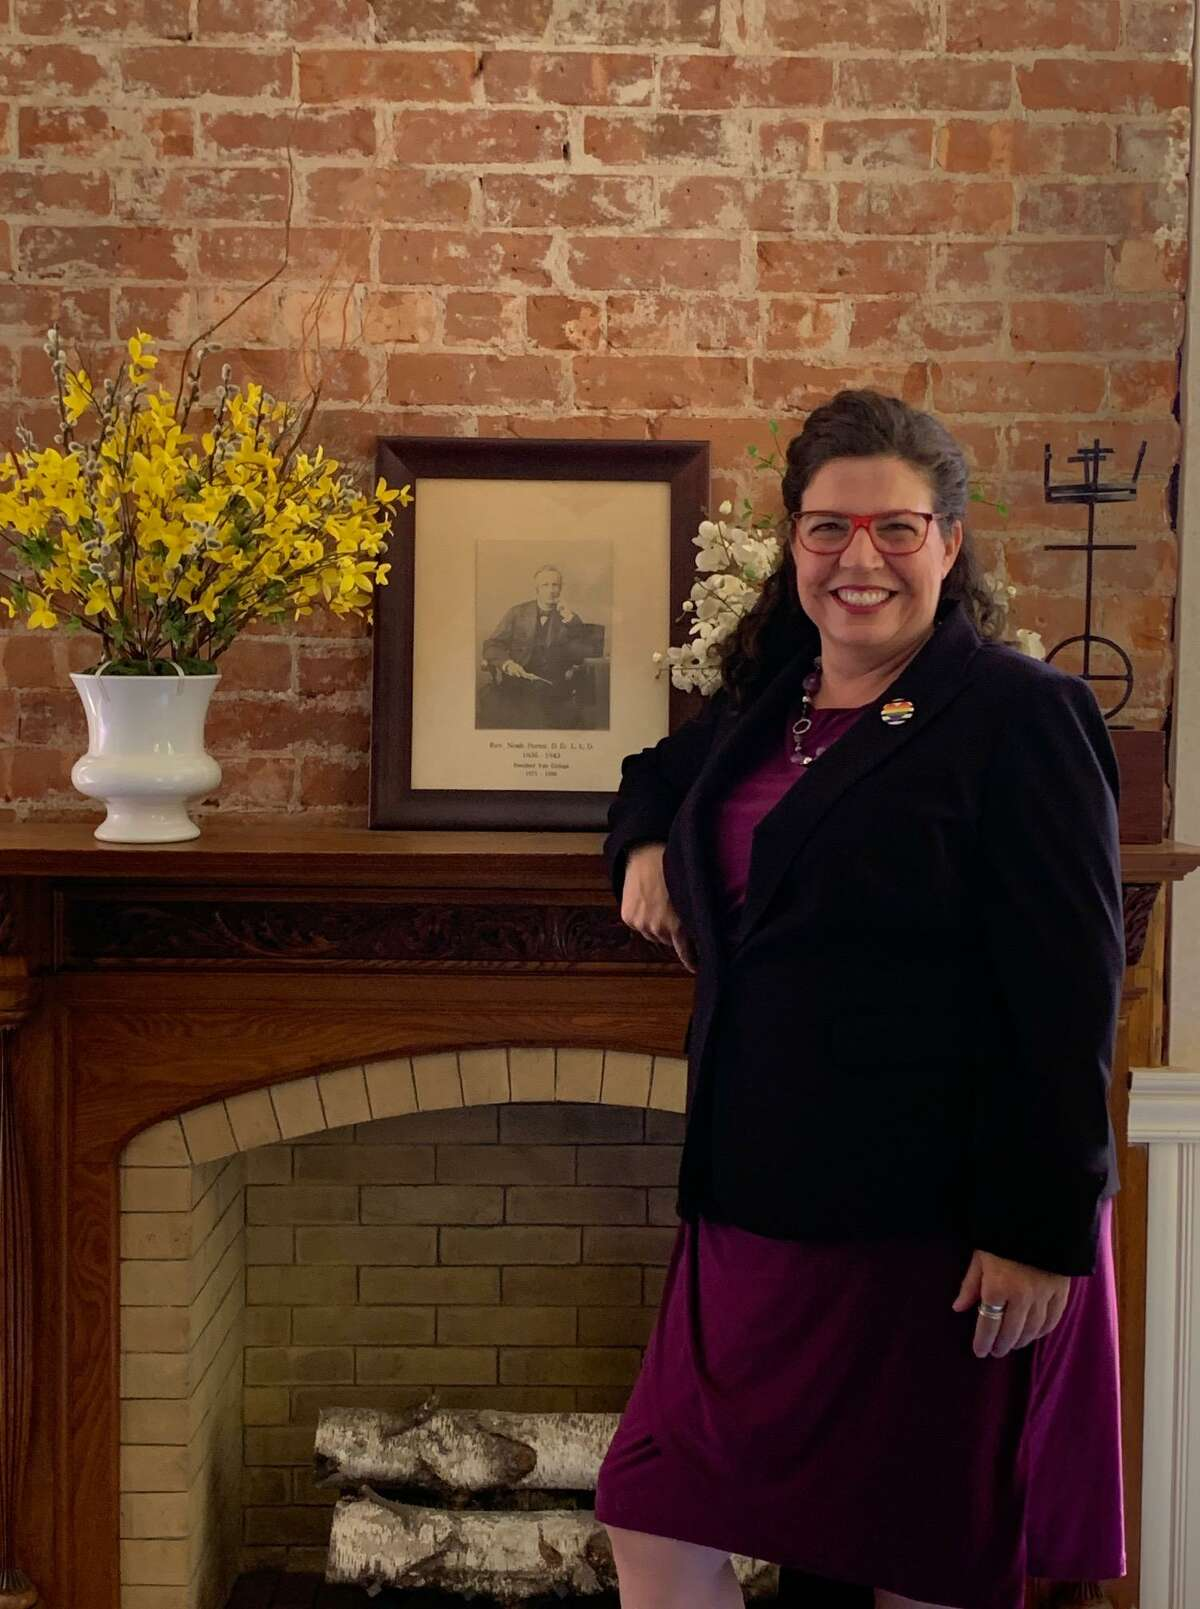 Amy Carter, standing beside a photograph of the Rev. Noah Porter, who served from 1836 to 1843.